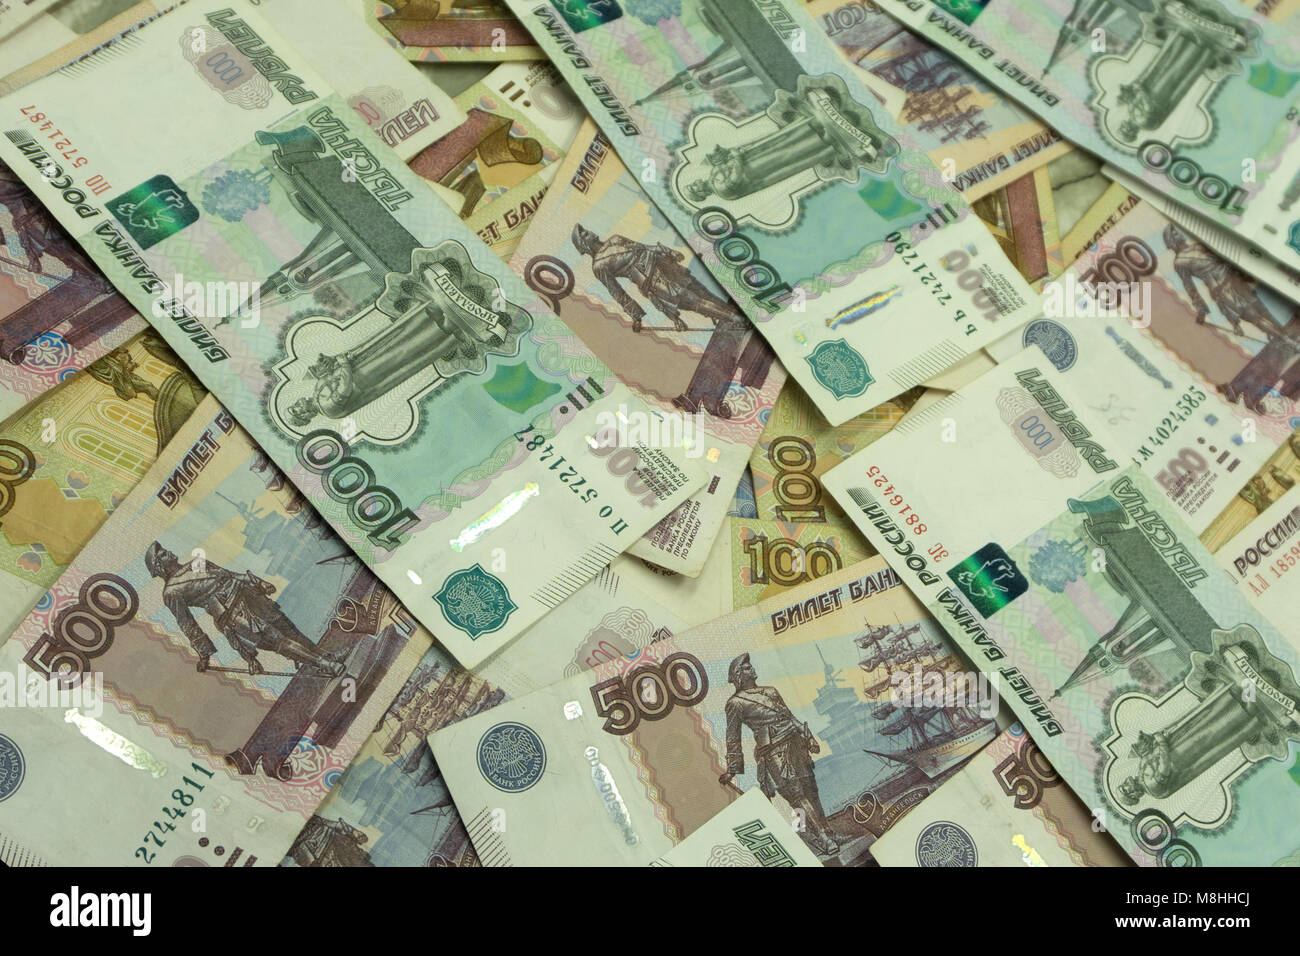 Background of thousandths Russian banknotes band, cash currency denomination five ruble russia thousand - Stock Image